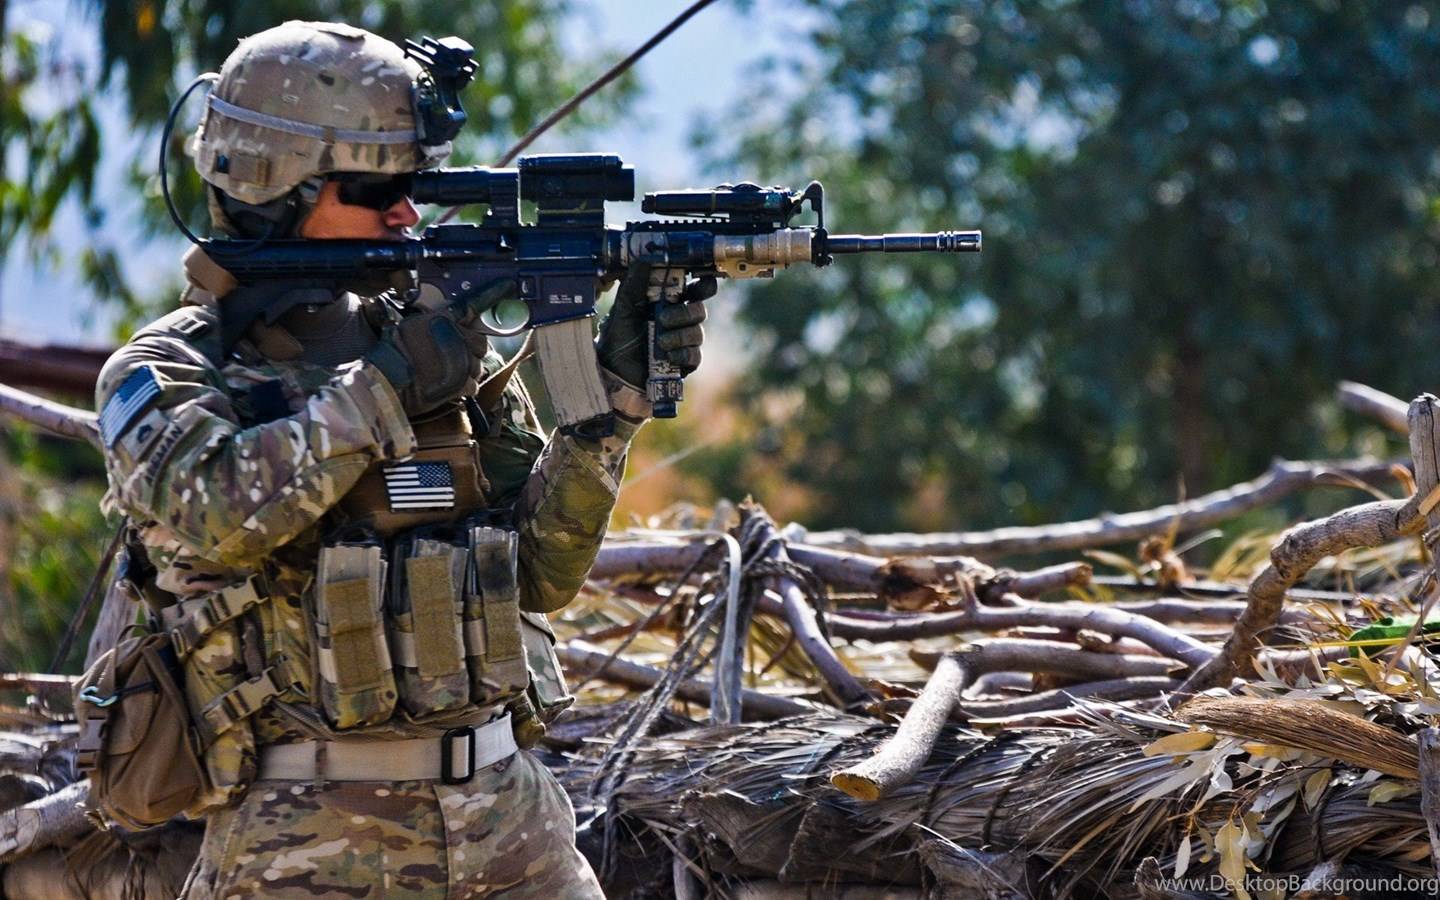 Download Us Army Wallpaper Hd 51: Us Army Multicam Widescreen Hd Wallpapers Desktop Background